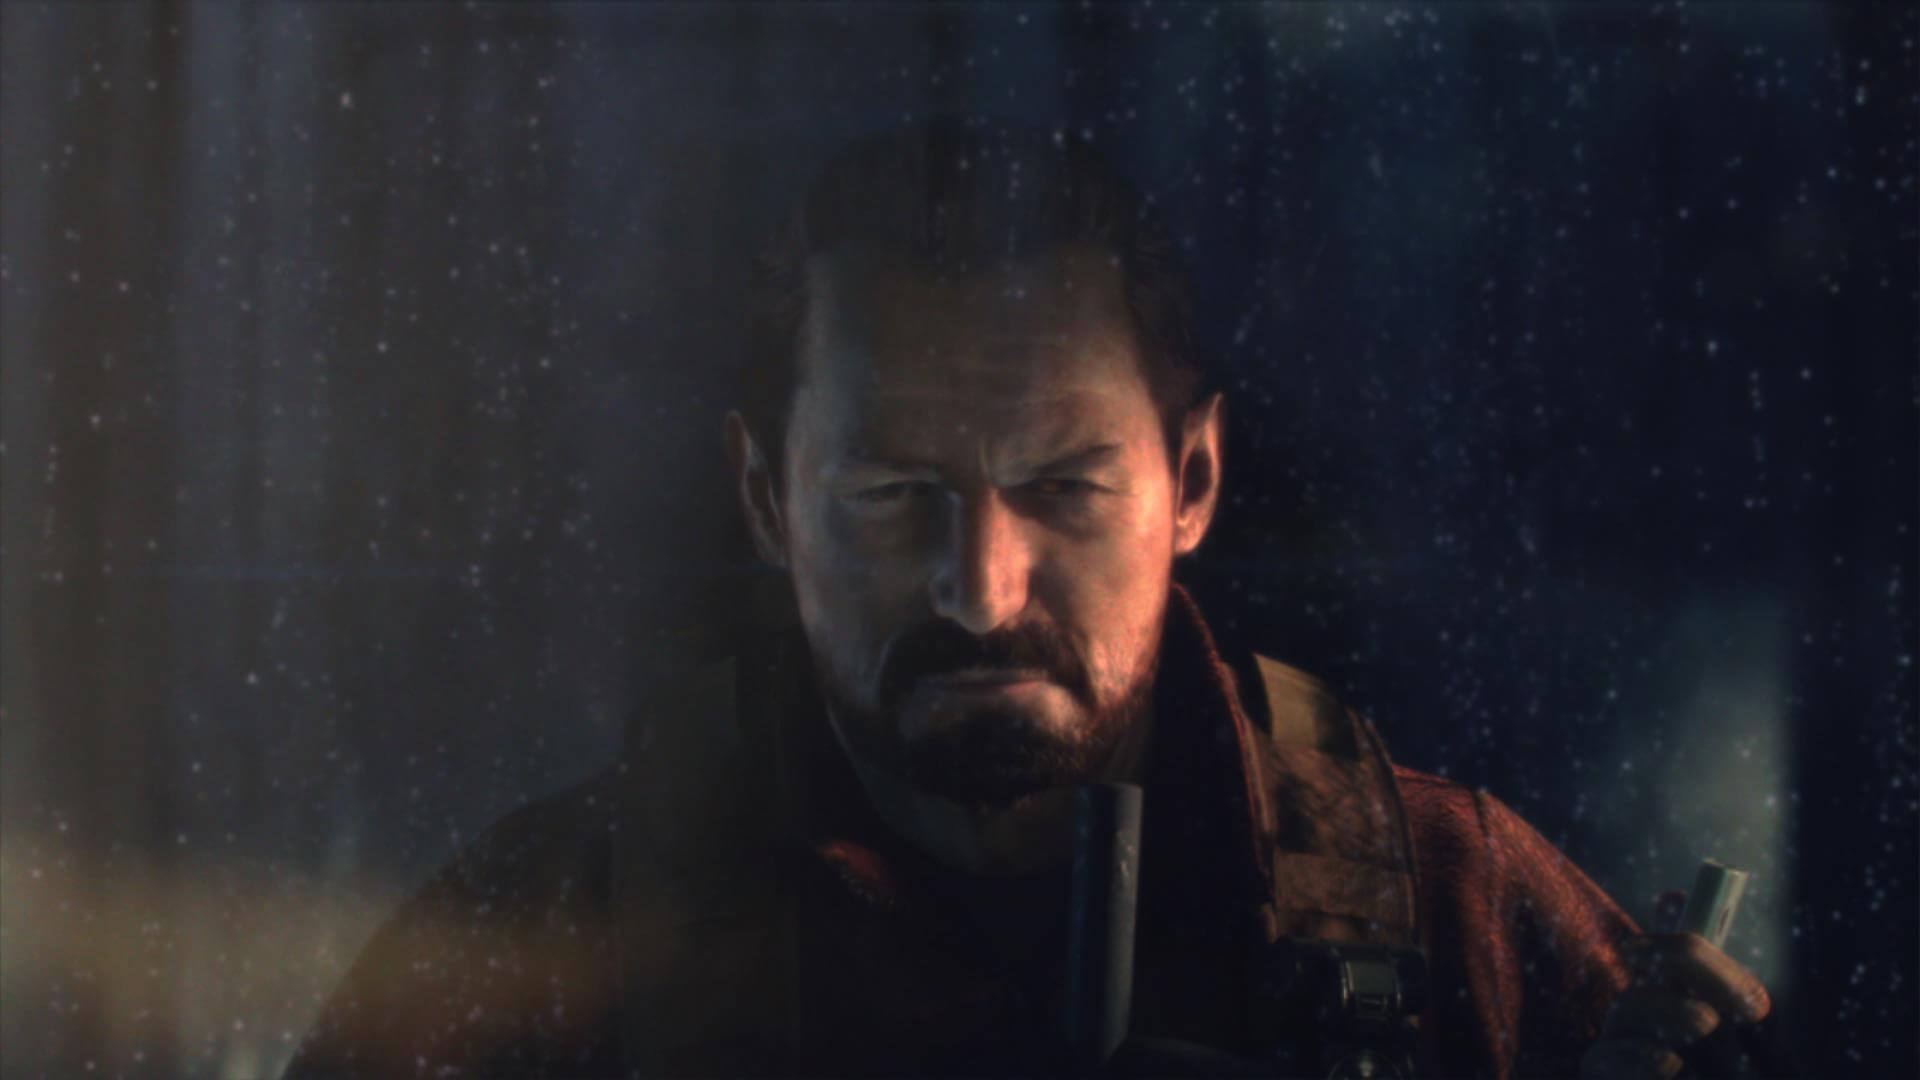 'Resident Evil: Revelations' Confirmed for Consoles; Trailer, Screens & Dates Released